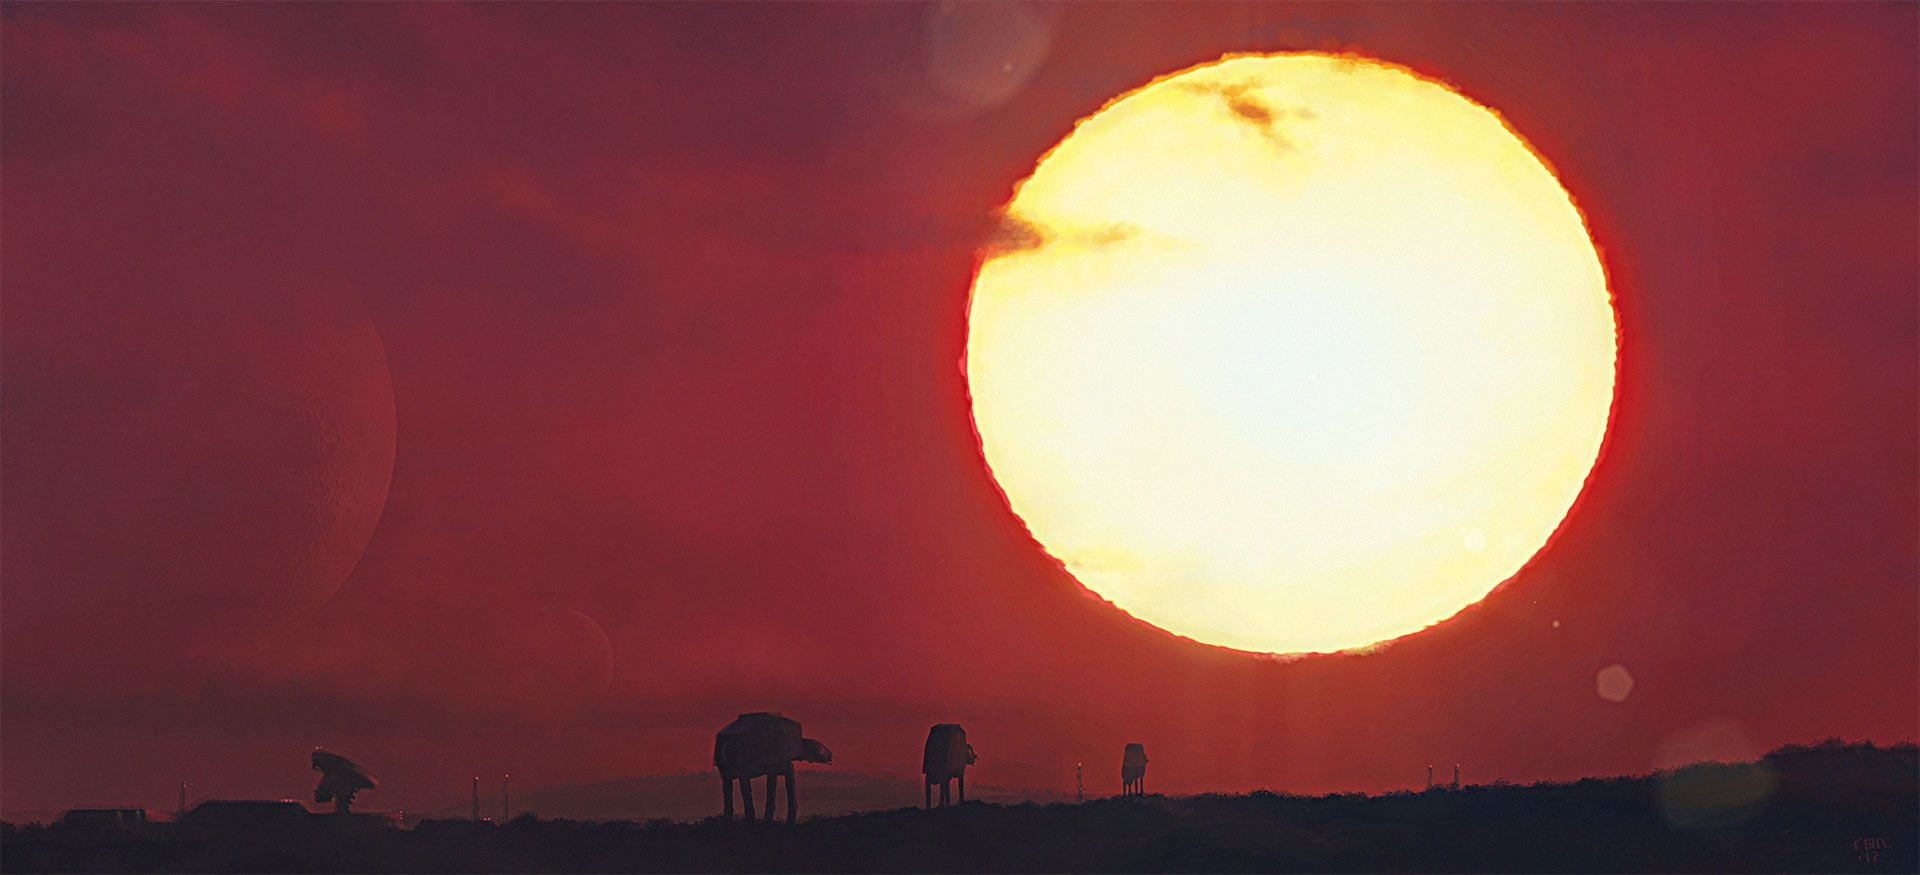 """Check out this @Behance project: """"Imperial AT-ATs on Dawn Patrol"""" https://www.behance.net/gallery/52623583/Imperial-AT-ATs-on-Dawn-Patrol"""